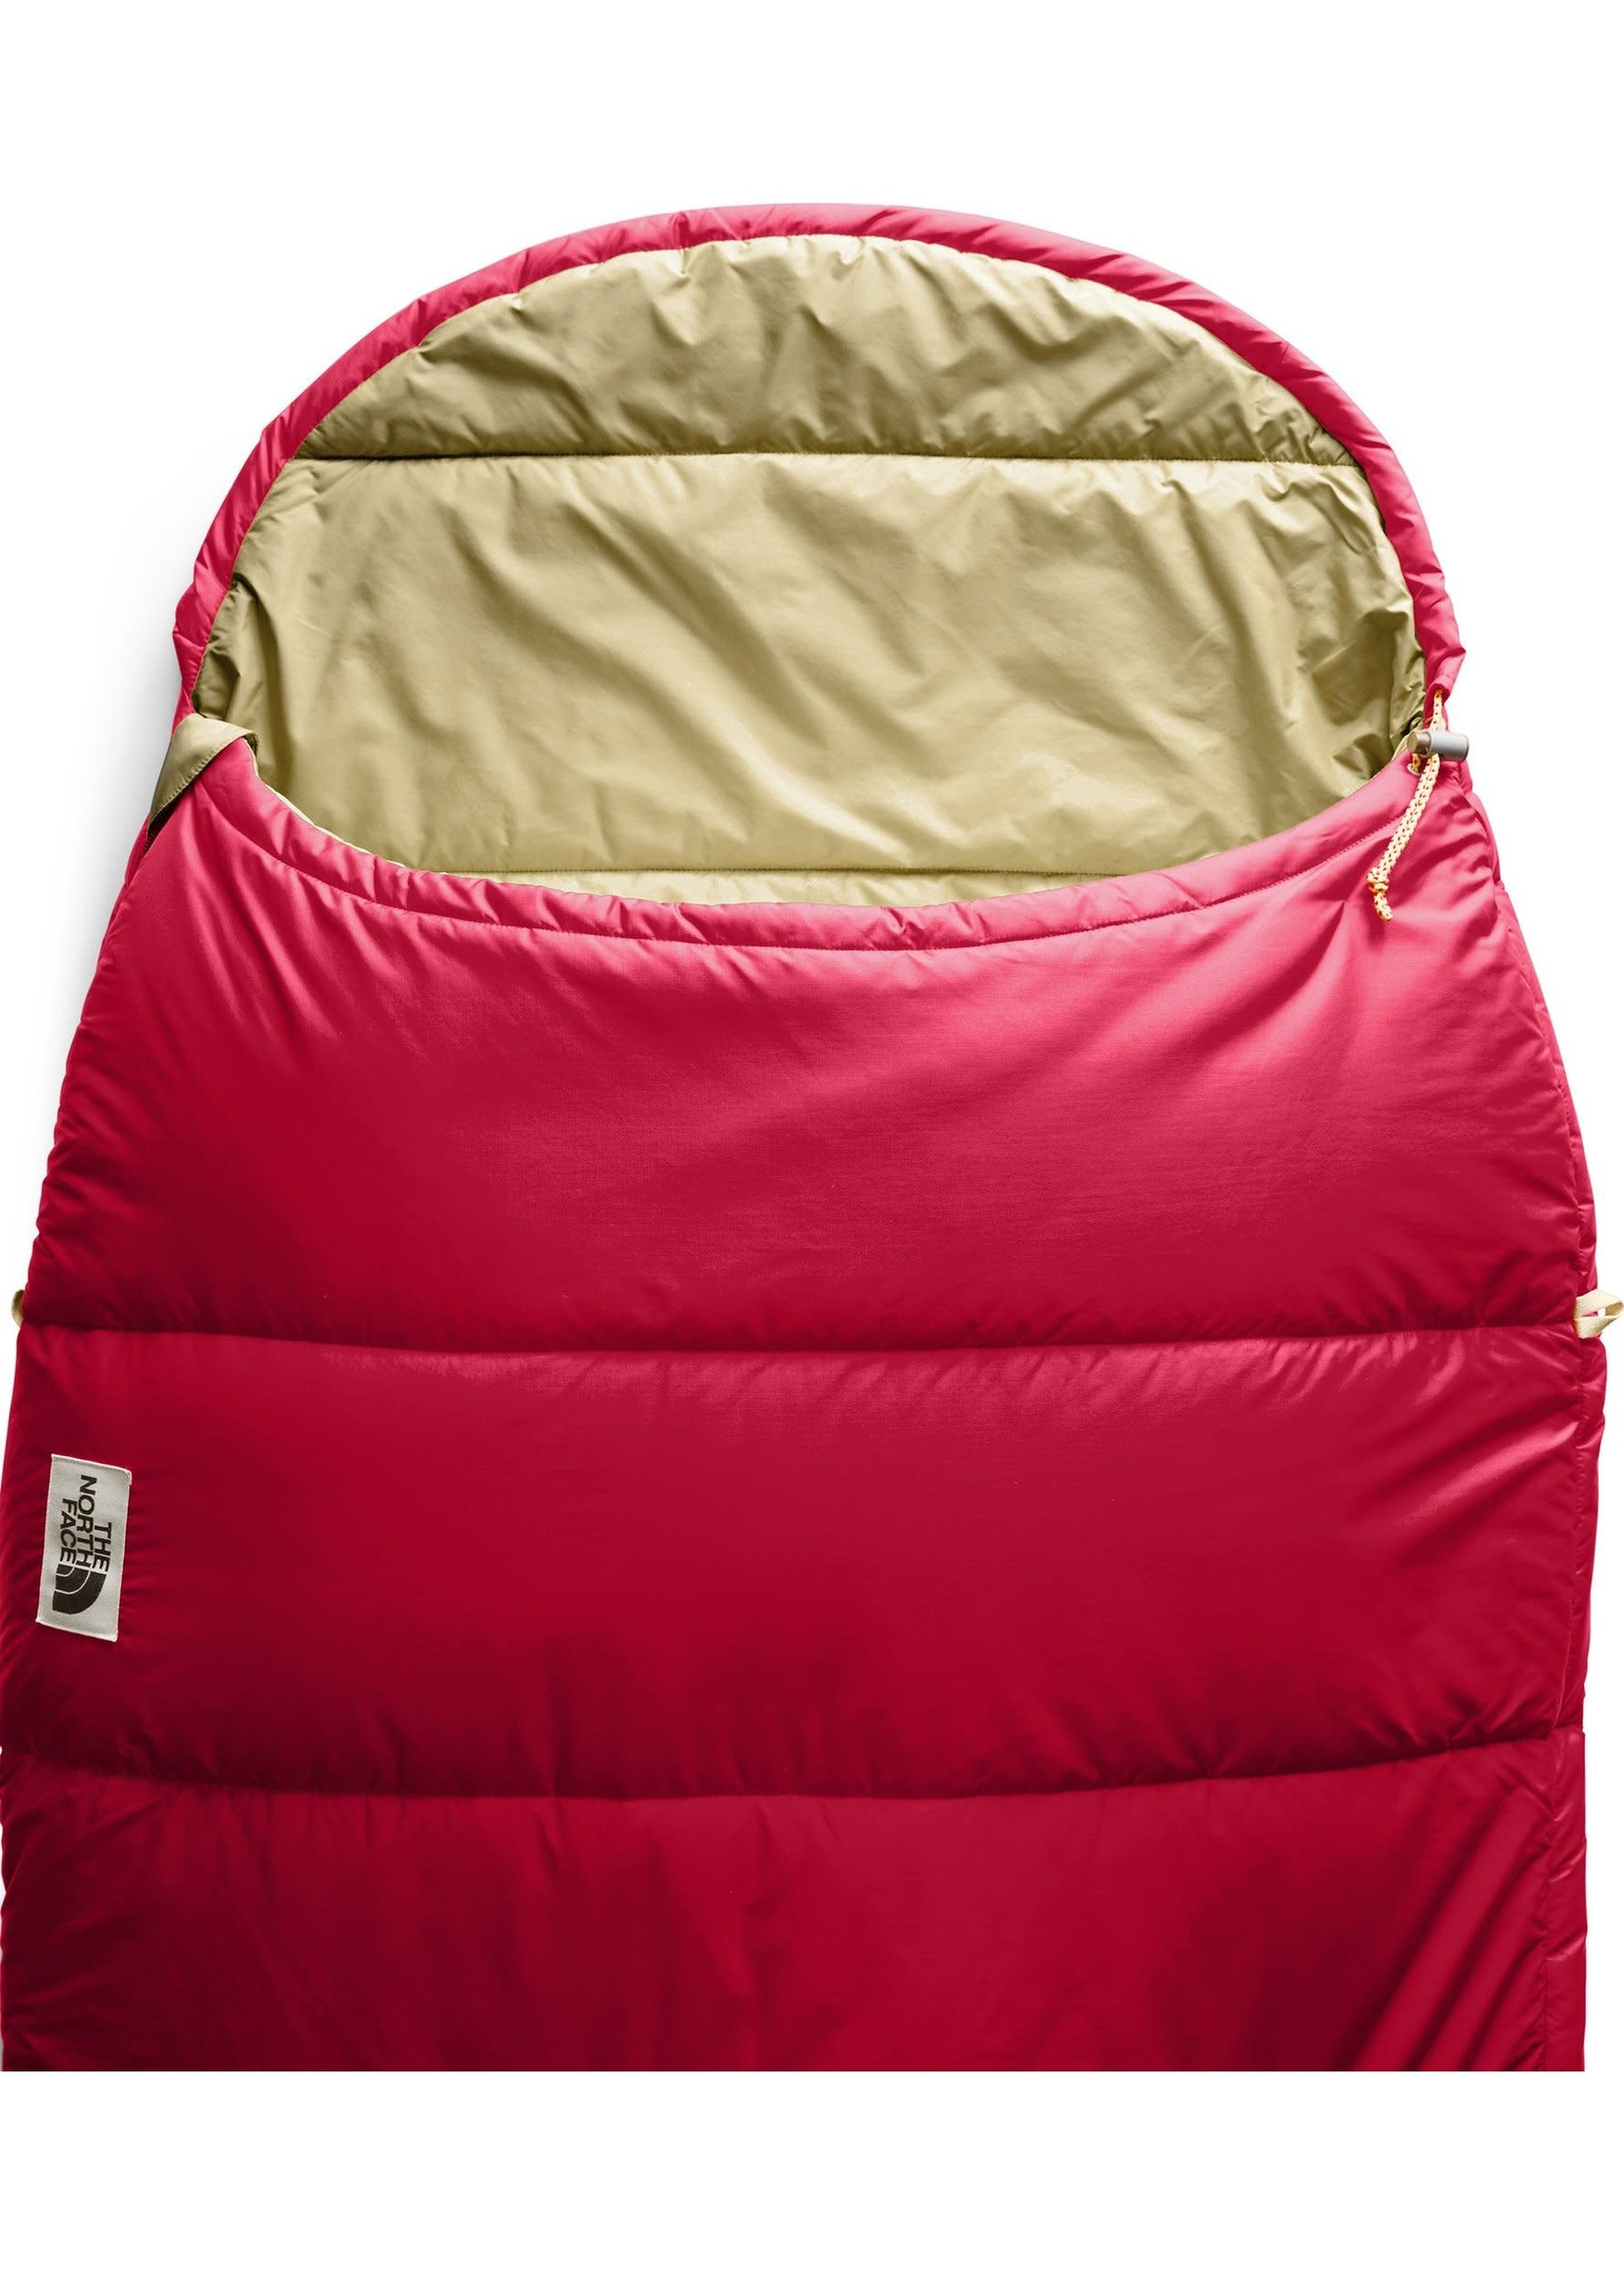 THE NORTH FACE Sac de couchage Eco Trail Synthetic 55 / Long / Rouge